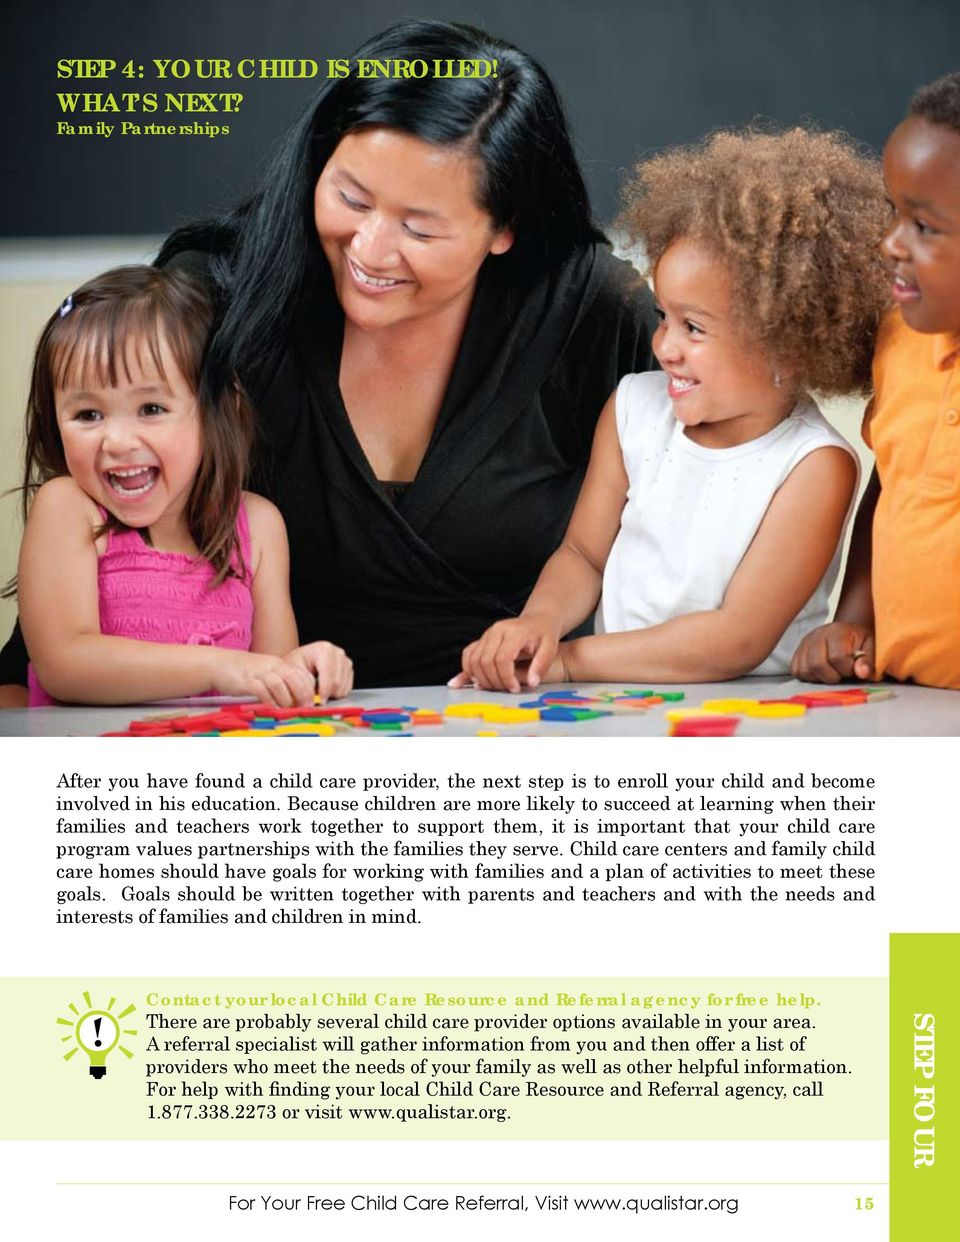 families they serve. Child care centers and family child care homes should have goals for working with families and a plan of activities to meet these goals.